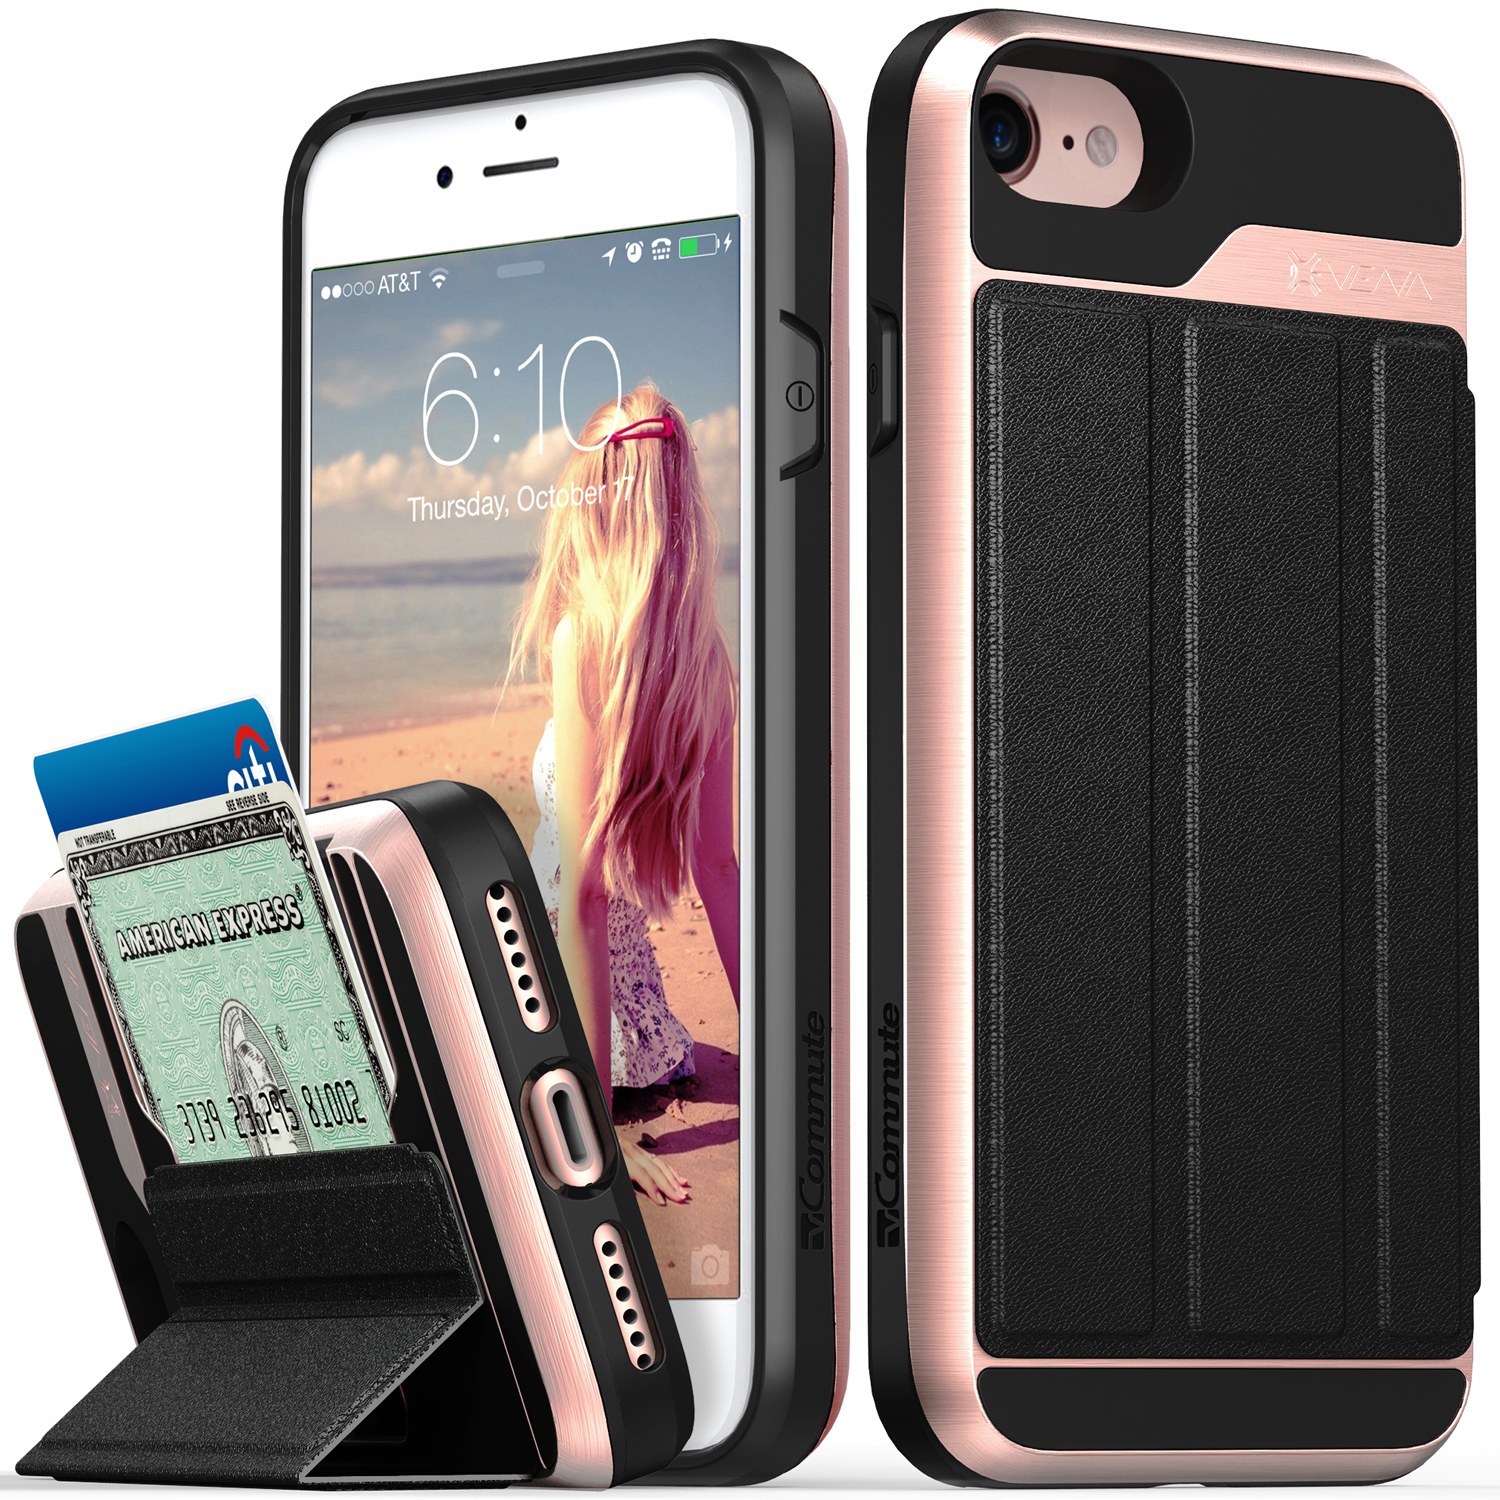 iPhone 8 Wallet Case, iPhone 7 Wallet Case, Vena [vCommute][Military Grade Drop Protection] Flip Leather Cover Card Slot Holder with KickStand for Apple iPhone 8 / iPhone 7 (Rose Gold / Black)